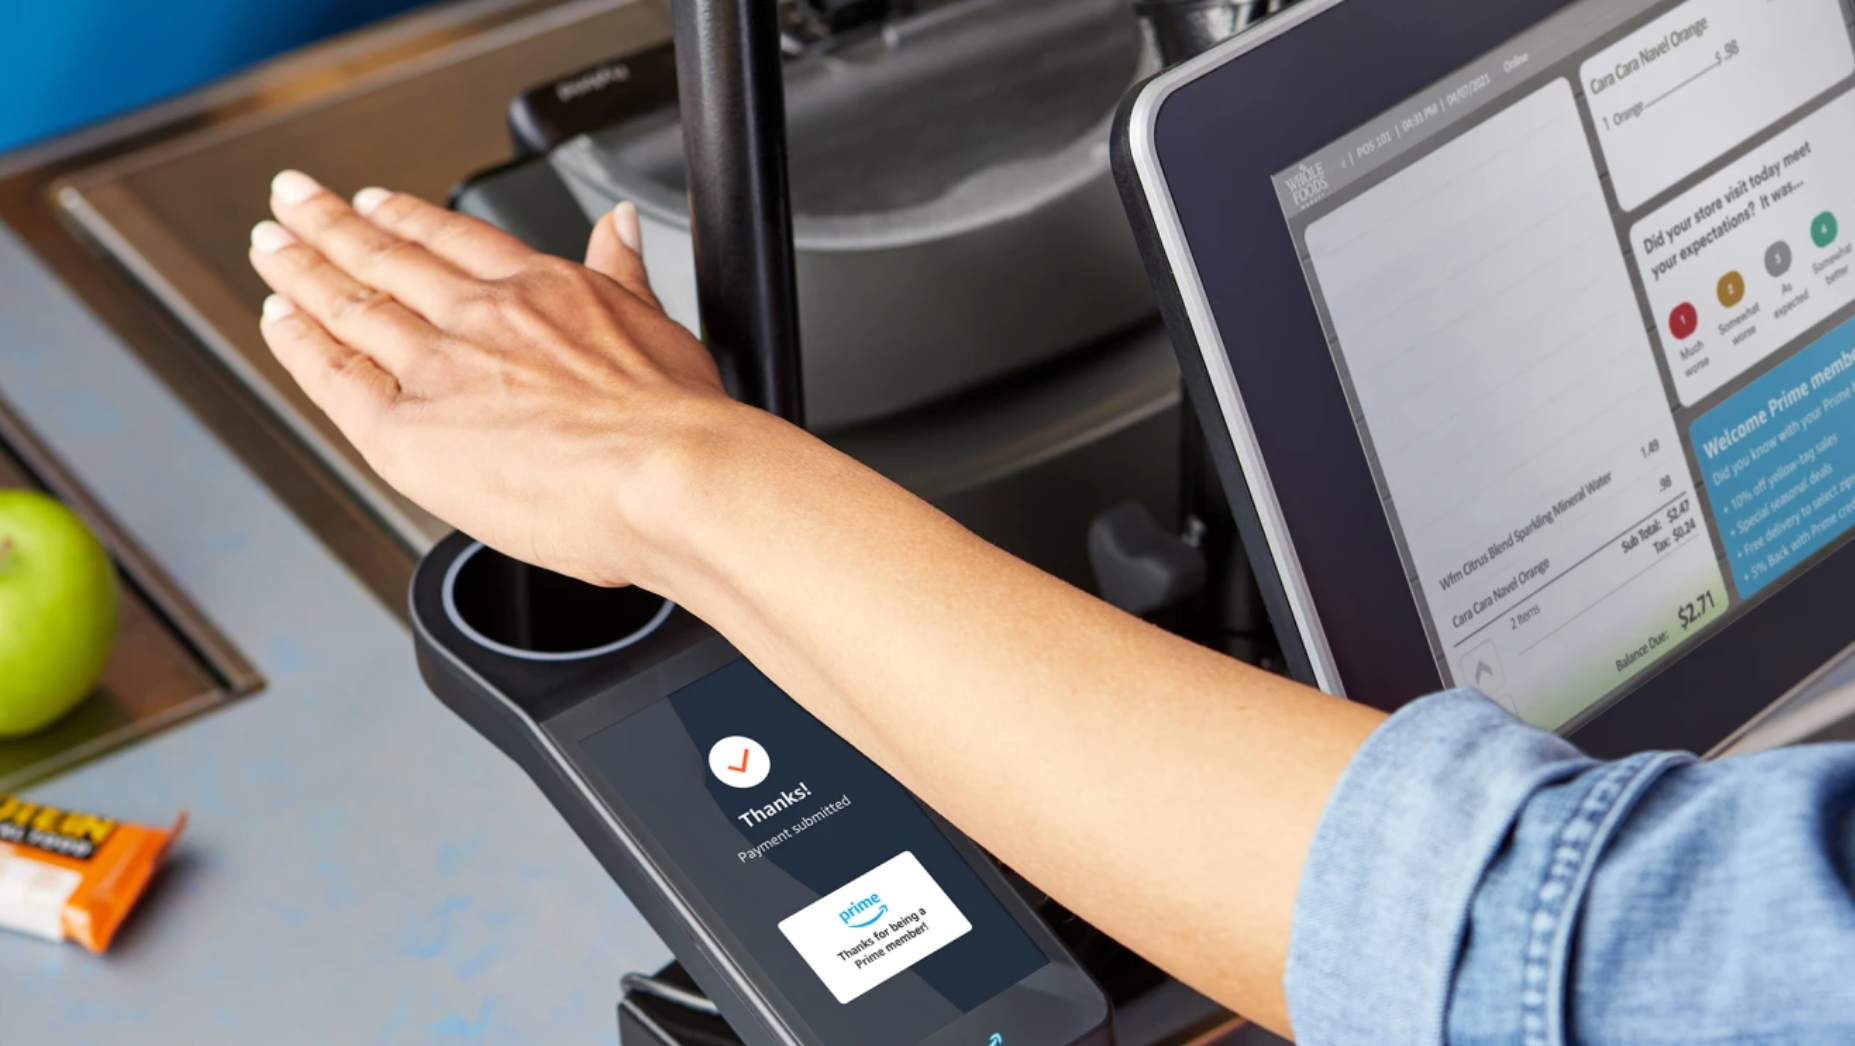 Amazon is bringing its palm-reading payment tech to Whole Foods stores